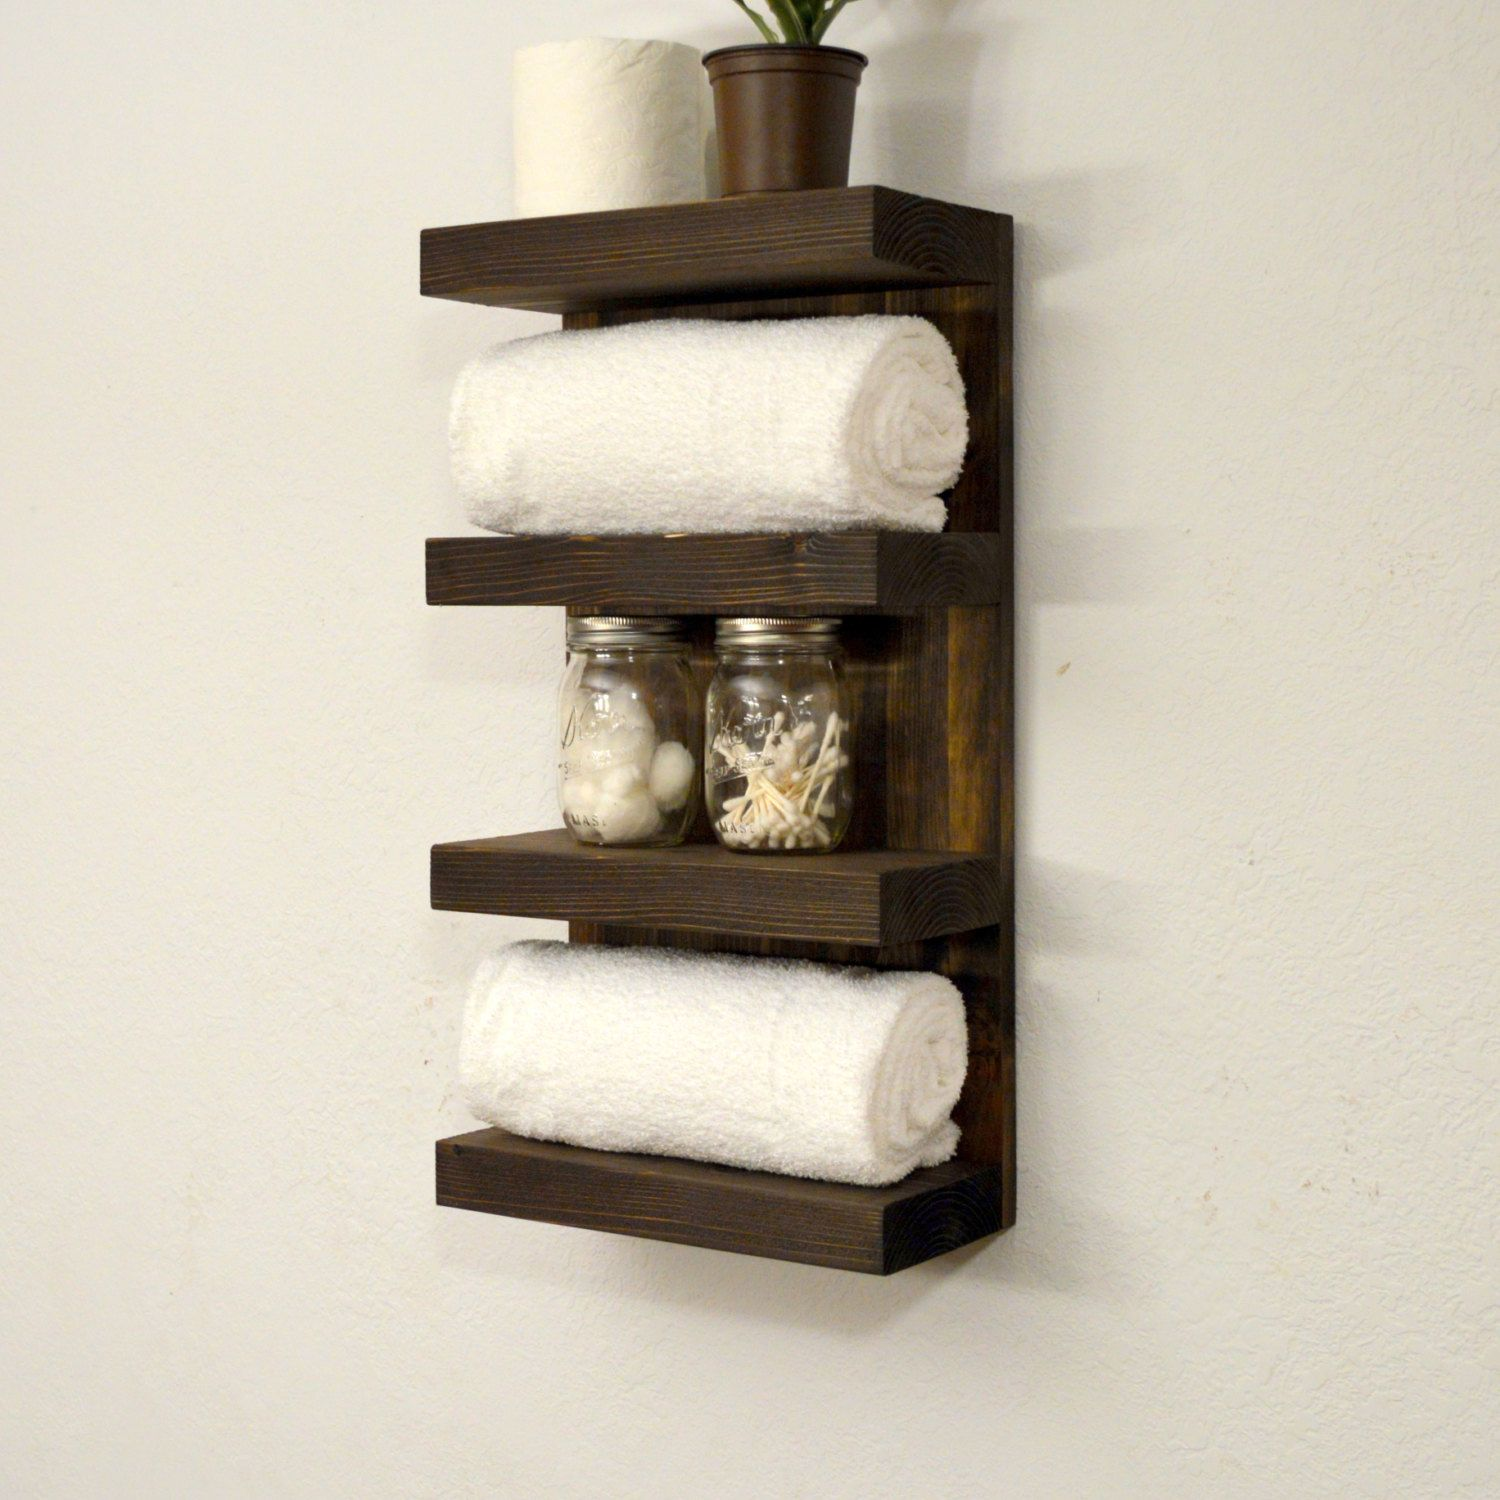 Bath Towel Shelf. Bathroom Towel Rack 4 Tier Bath Storage Floating Shelf  Hotel Style Dark